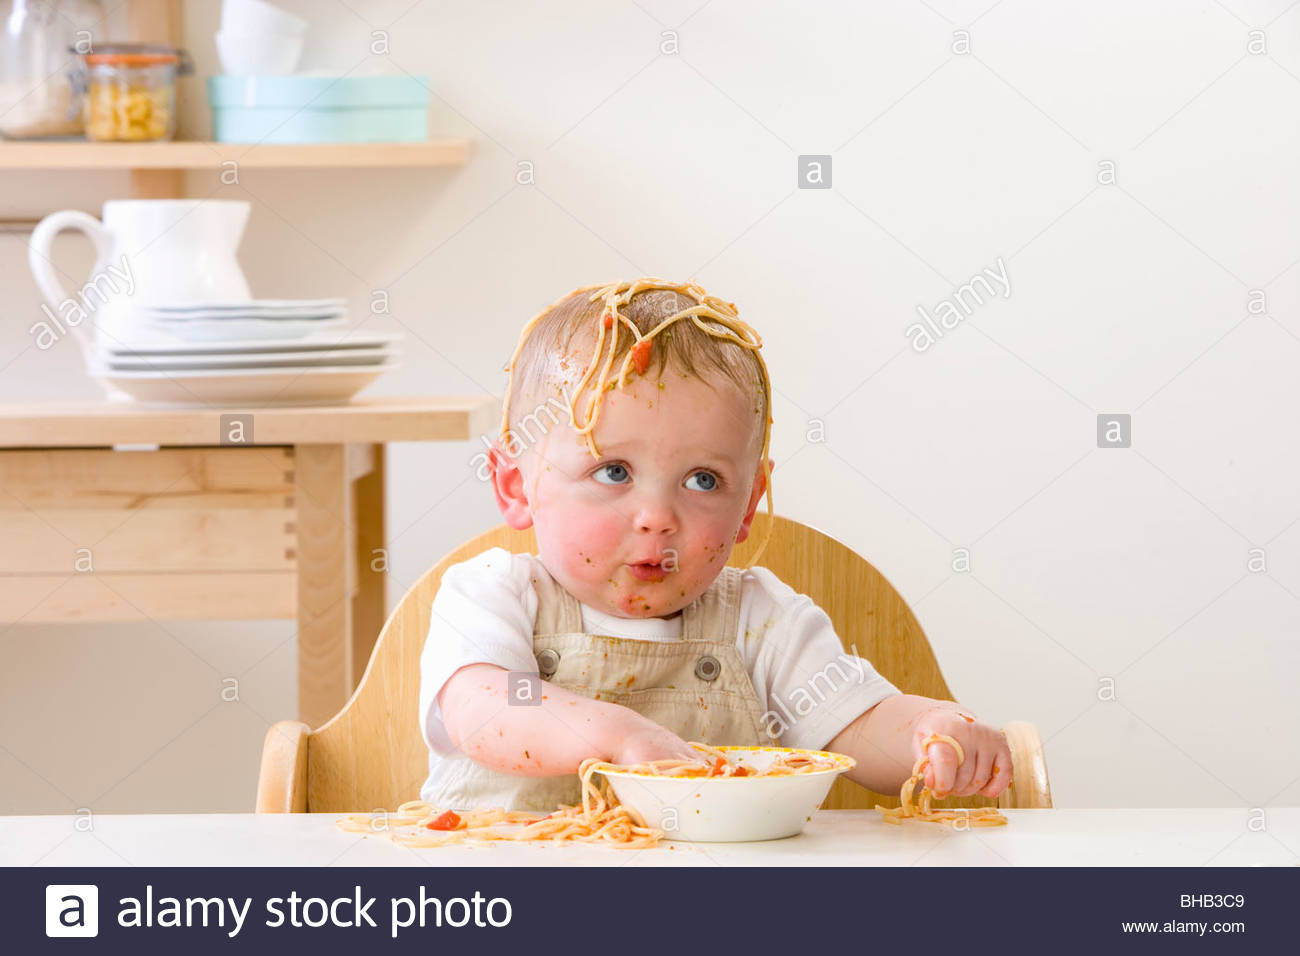 High Chair For Baby Boy Messy Baby Boy In High Chair Eating Spaghetti Stock Photo